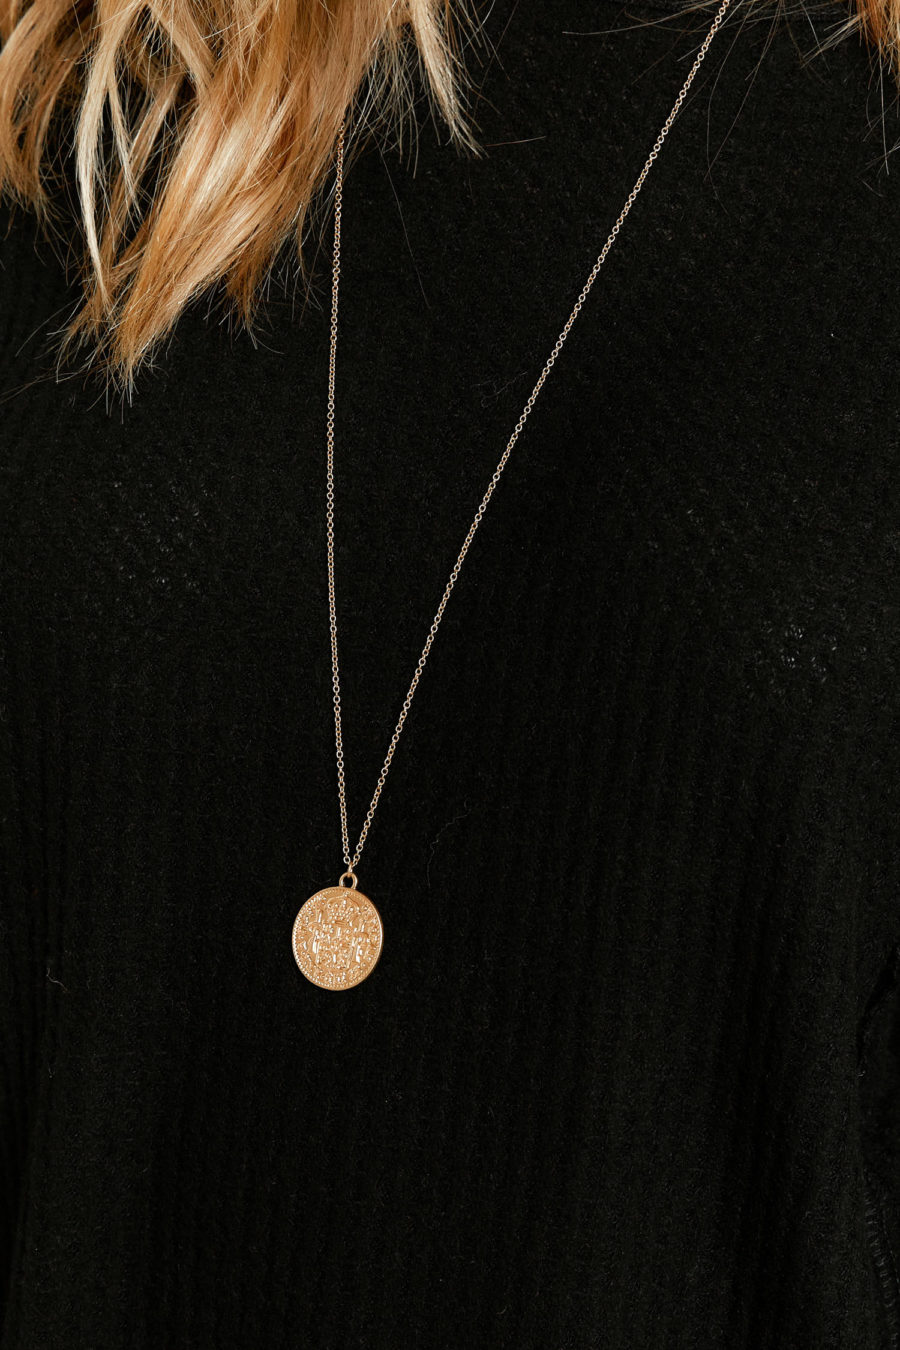 Boy With a Coin Necklace